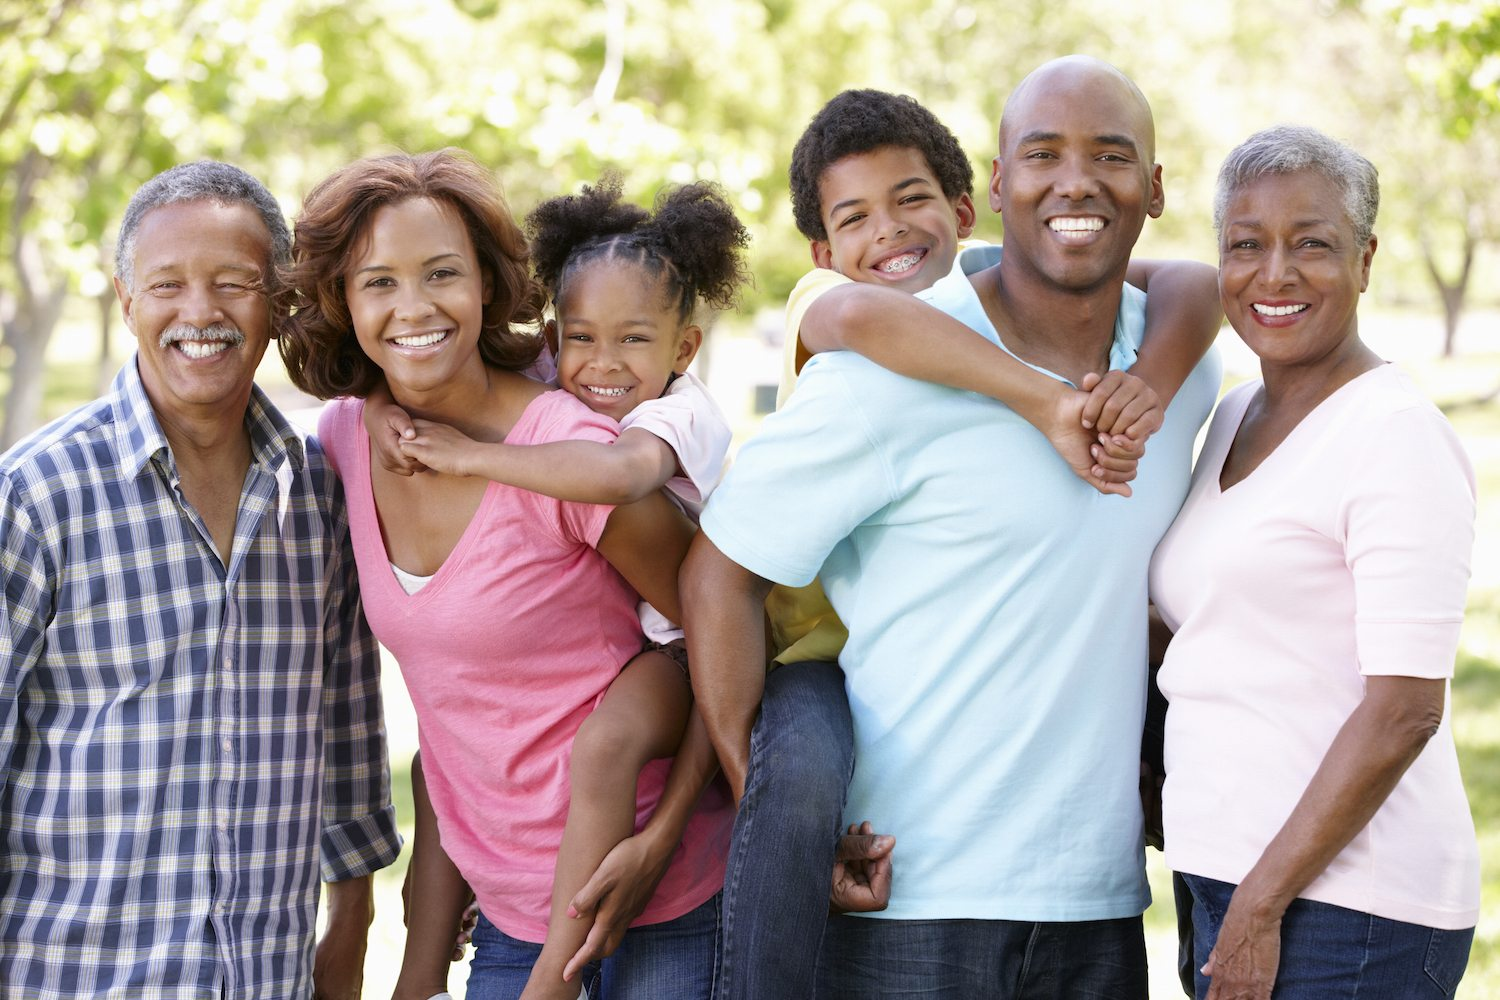 Tips for Making Quality Family Time During the Holidays